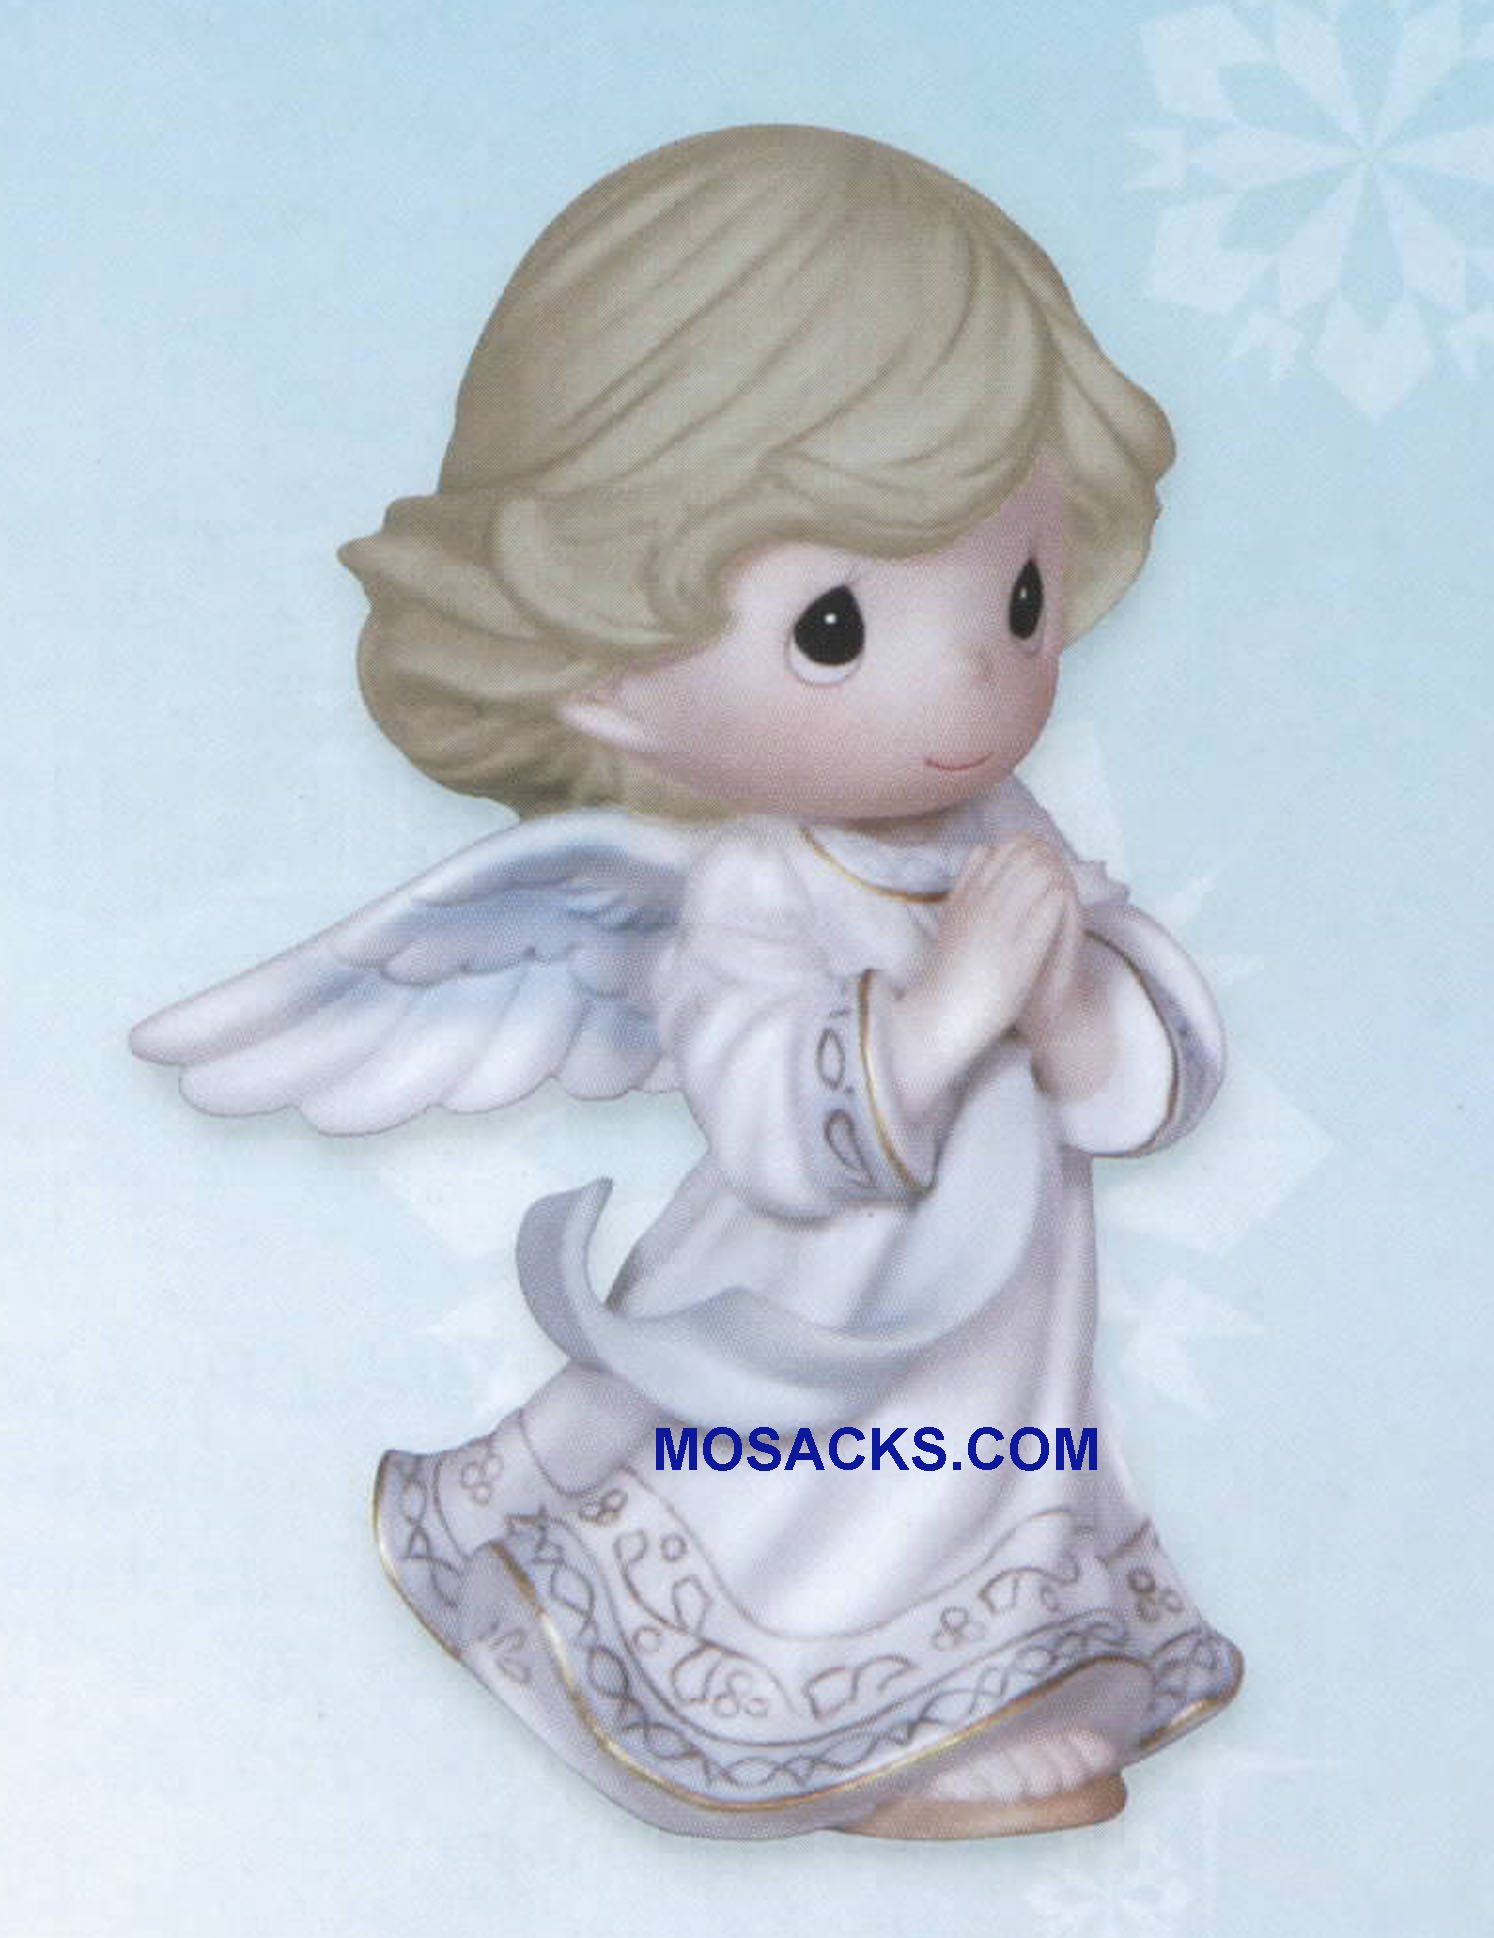 Precious Moments Mini Nativity Angel - Glory To God In The Highest #131035